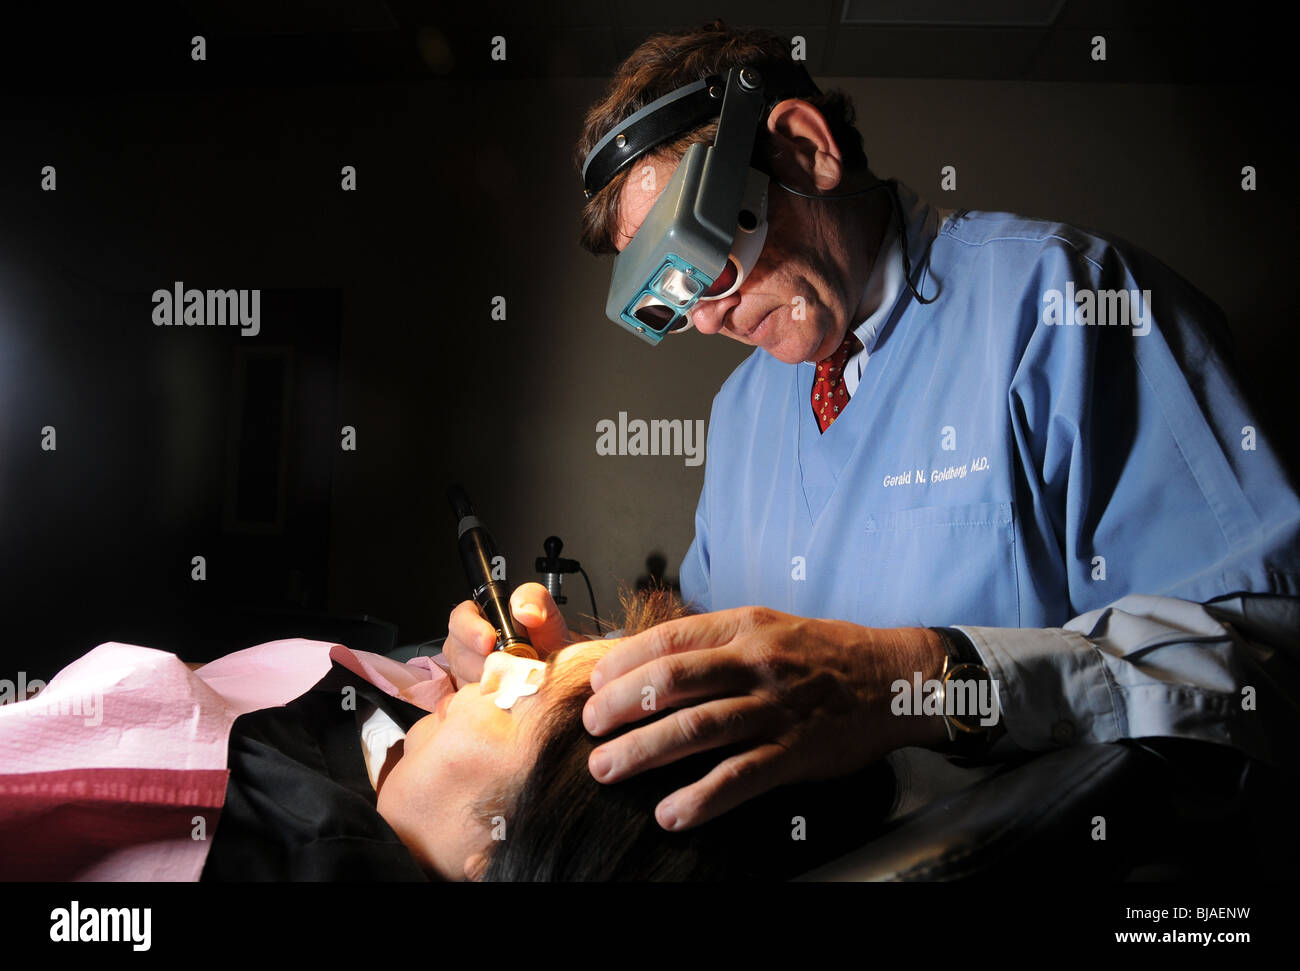 Gerald N. Goldberg, M.D., of Pima Dermatology, practices adult, pediatric and cosmetic dermatology and laser and - Stock Image